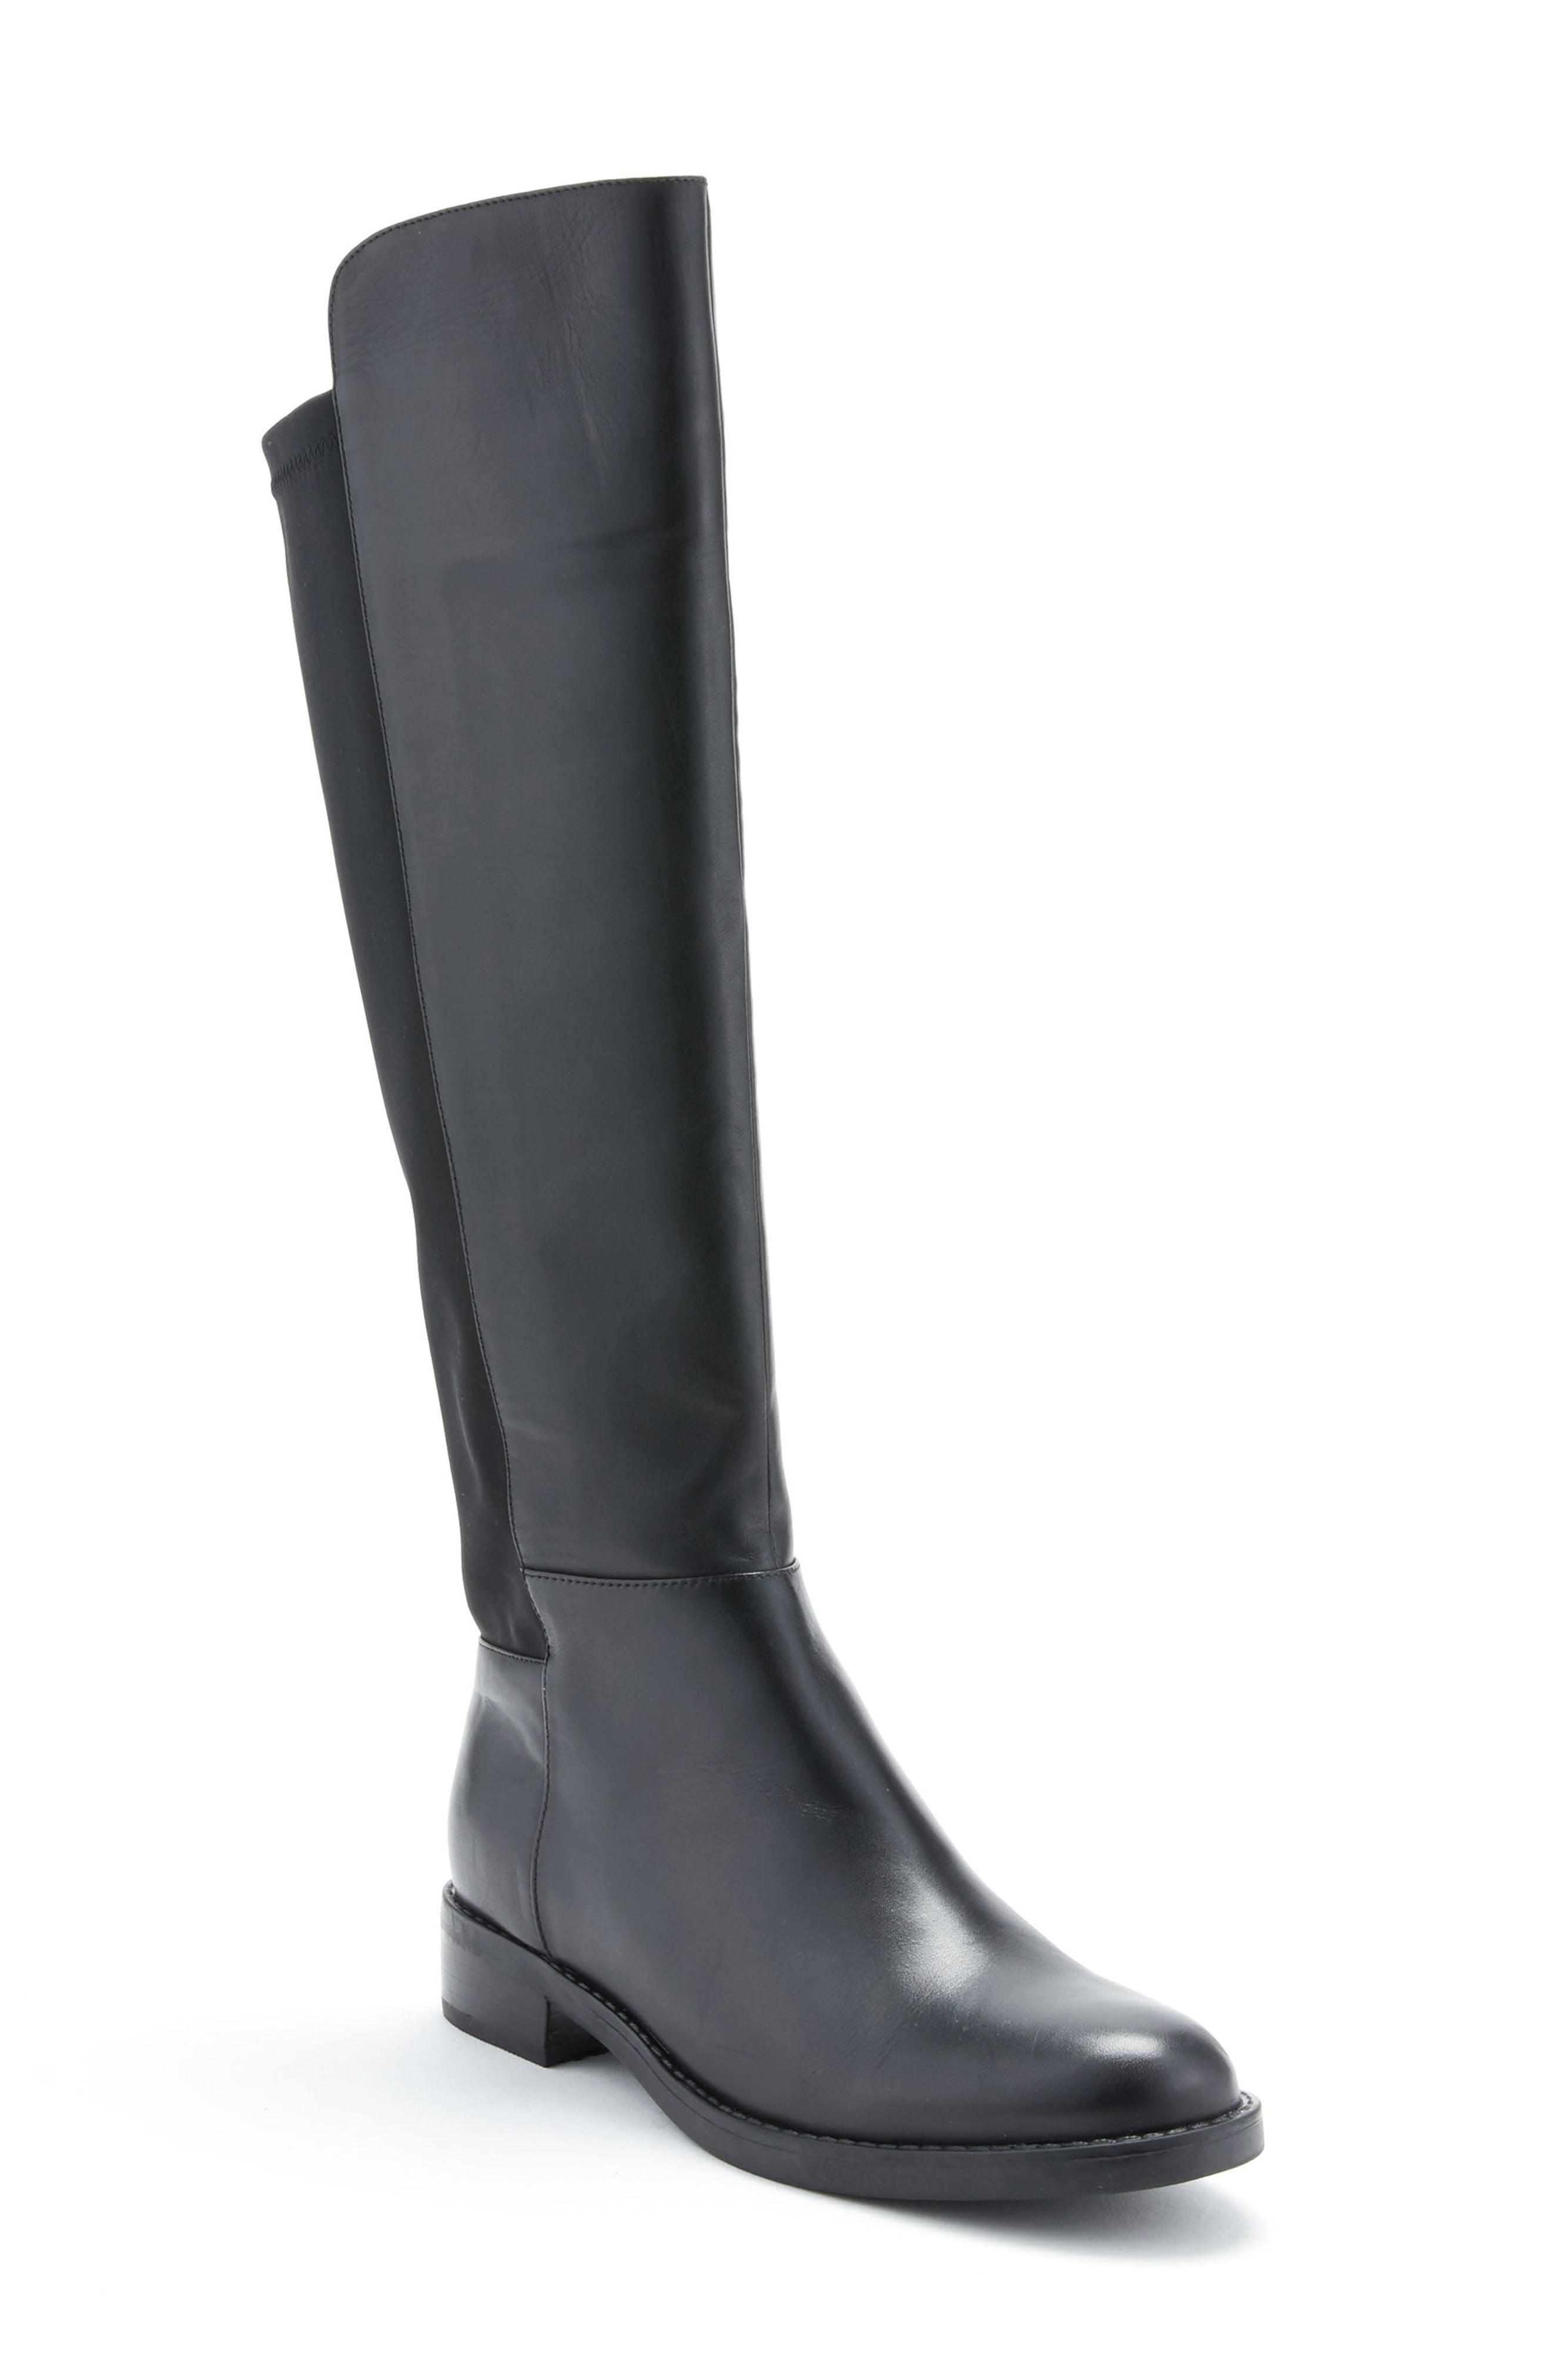 a1fe44f4fc6 Lyst - Blondo Ellie Waterproof Knee High Riding Boot in Black - Save 24%